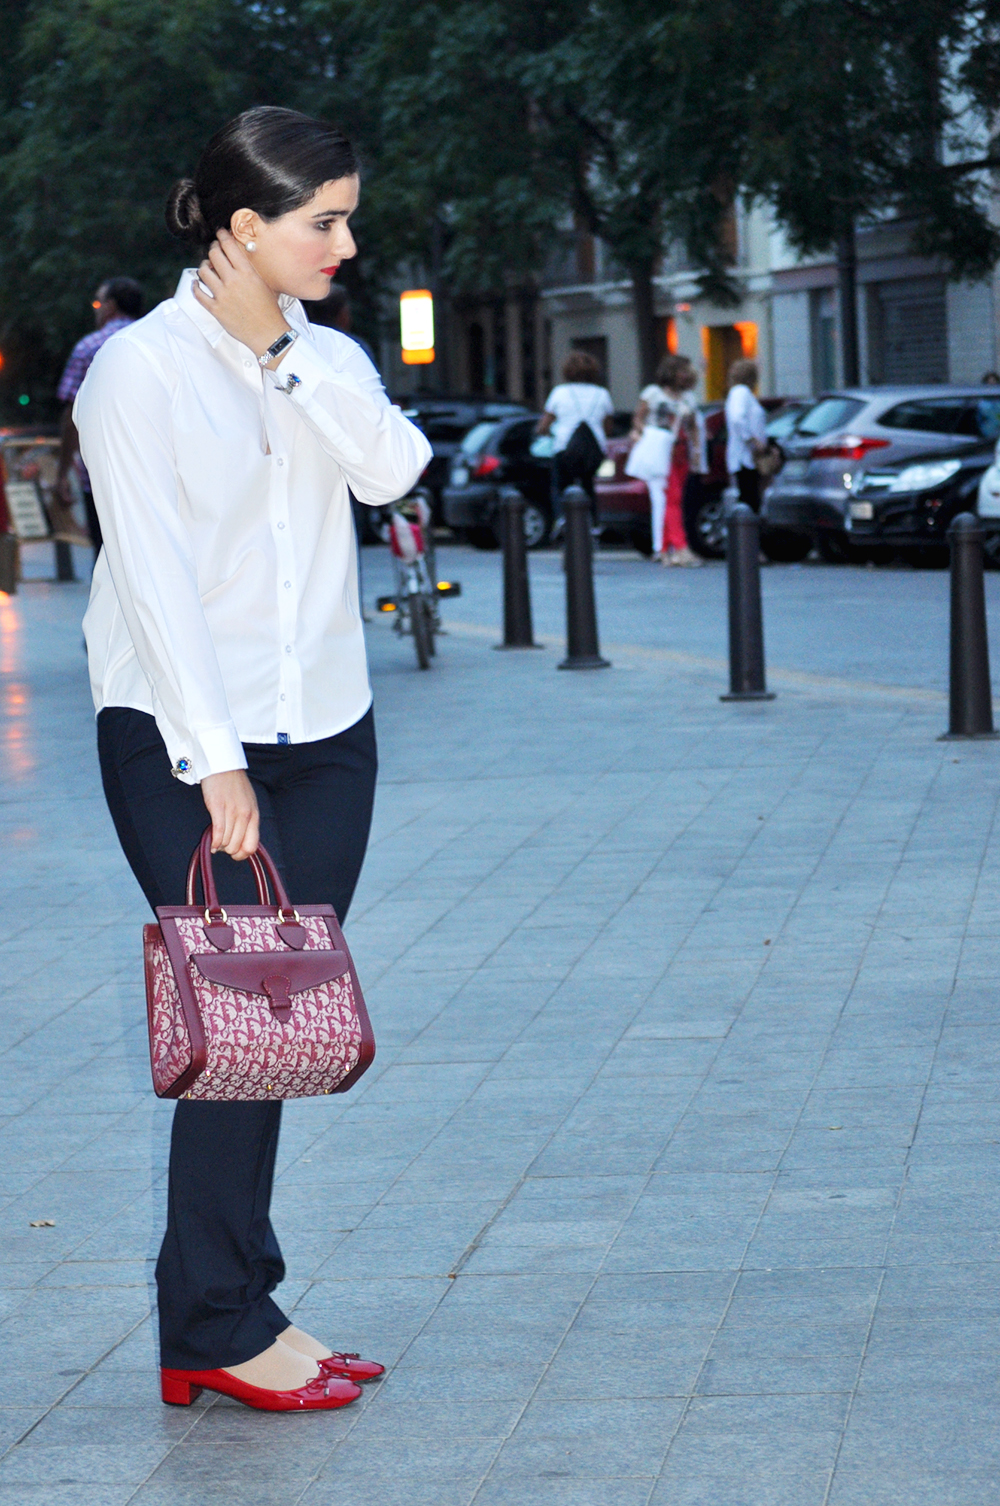 something fashion blogger spain valencia, #17VFW fashion week runway autumn winter outfits 2014 masculine look inspired cufflinks colette peletería white shirt women dior monogram vintage tote bag red